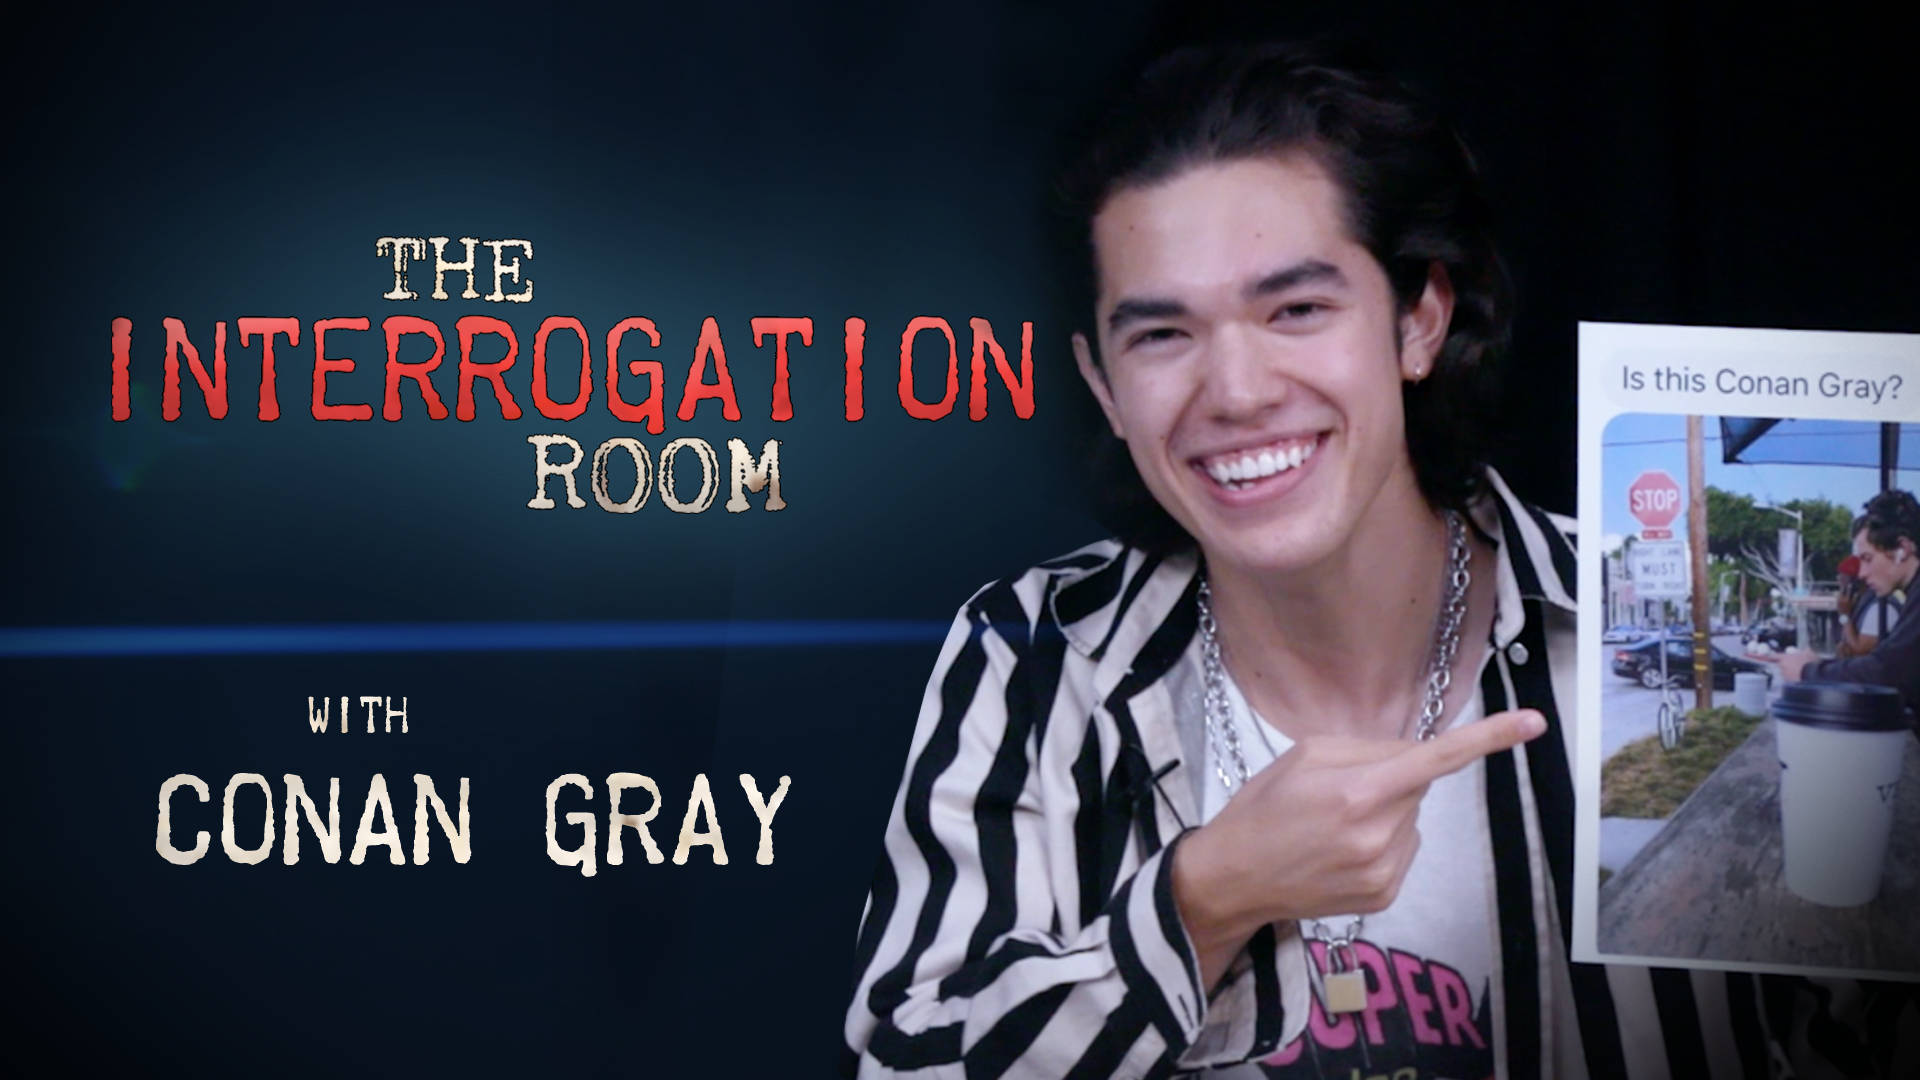 Conan Gray sings his most existential tweets in the Interrogation Room | PopBuzz Meets